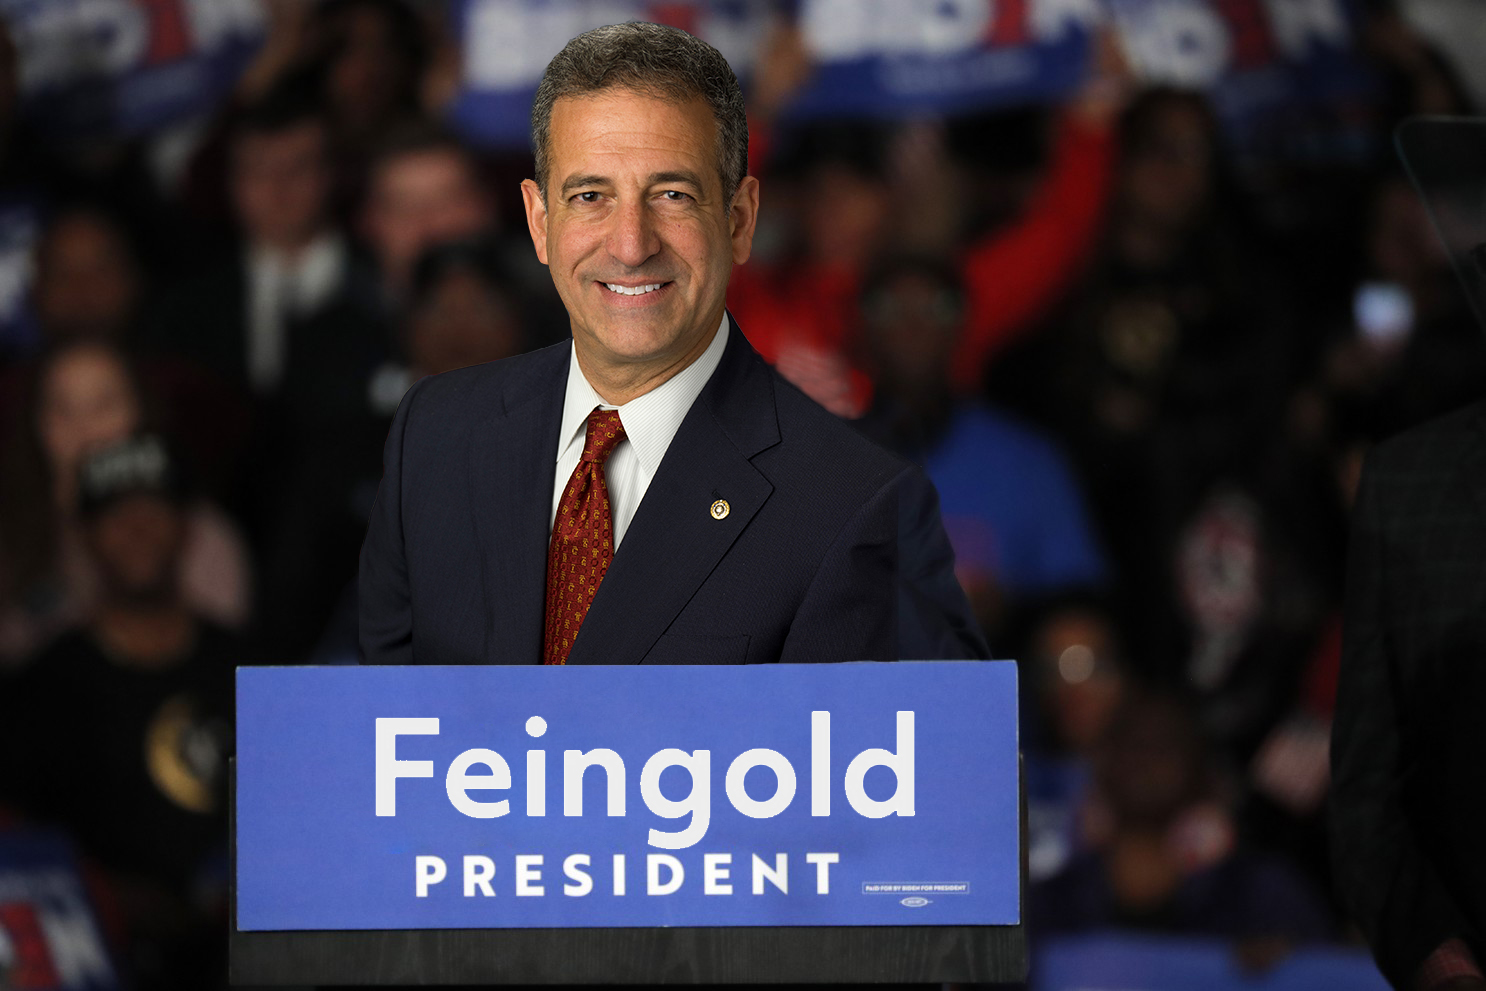 APRIL FOOLS – Russ Feingold accepts Democratic nomination